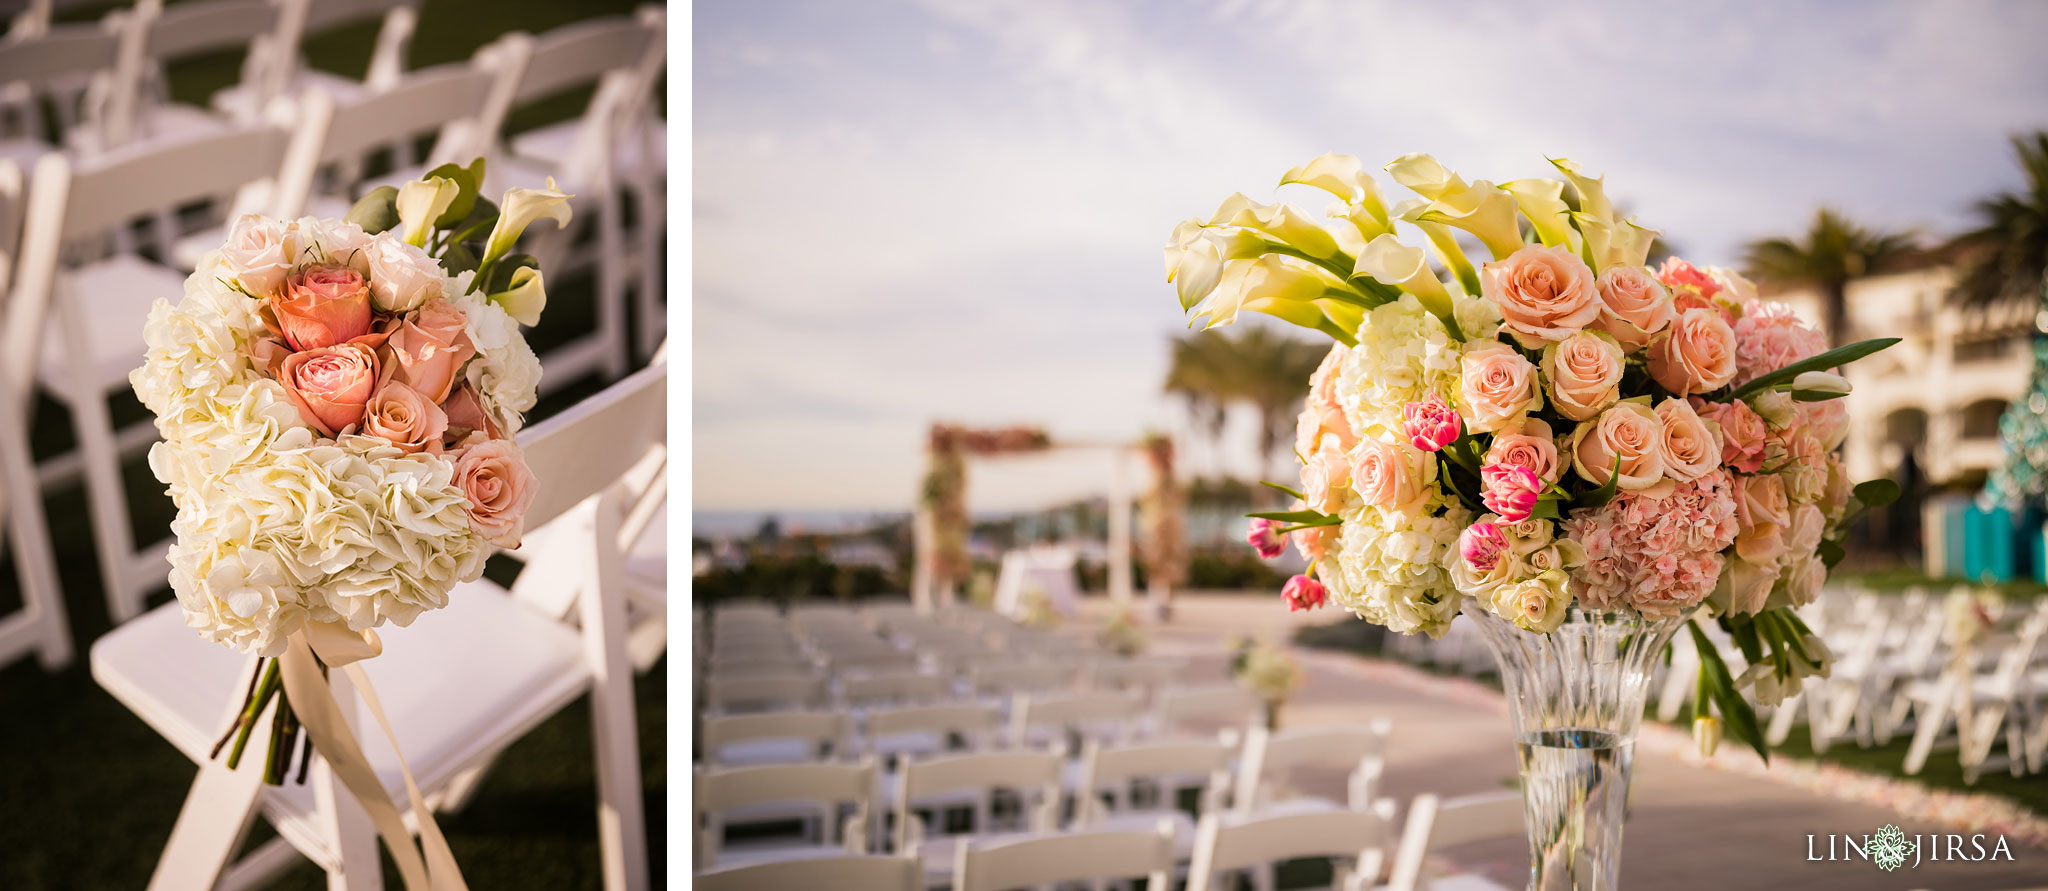 25 monarch beach resort wedding ceremony photography